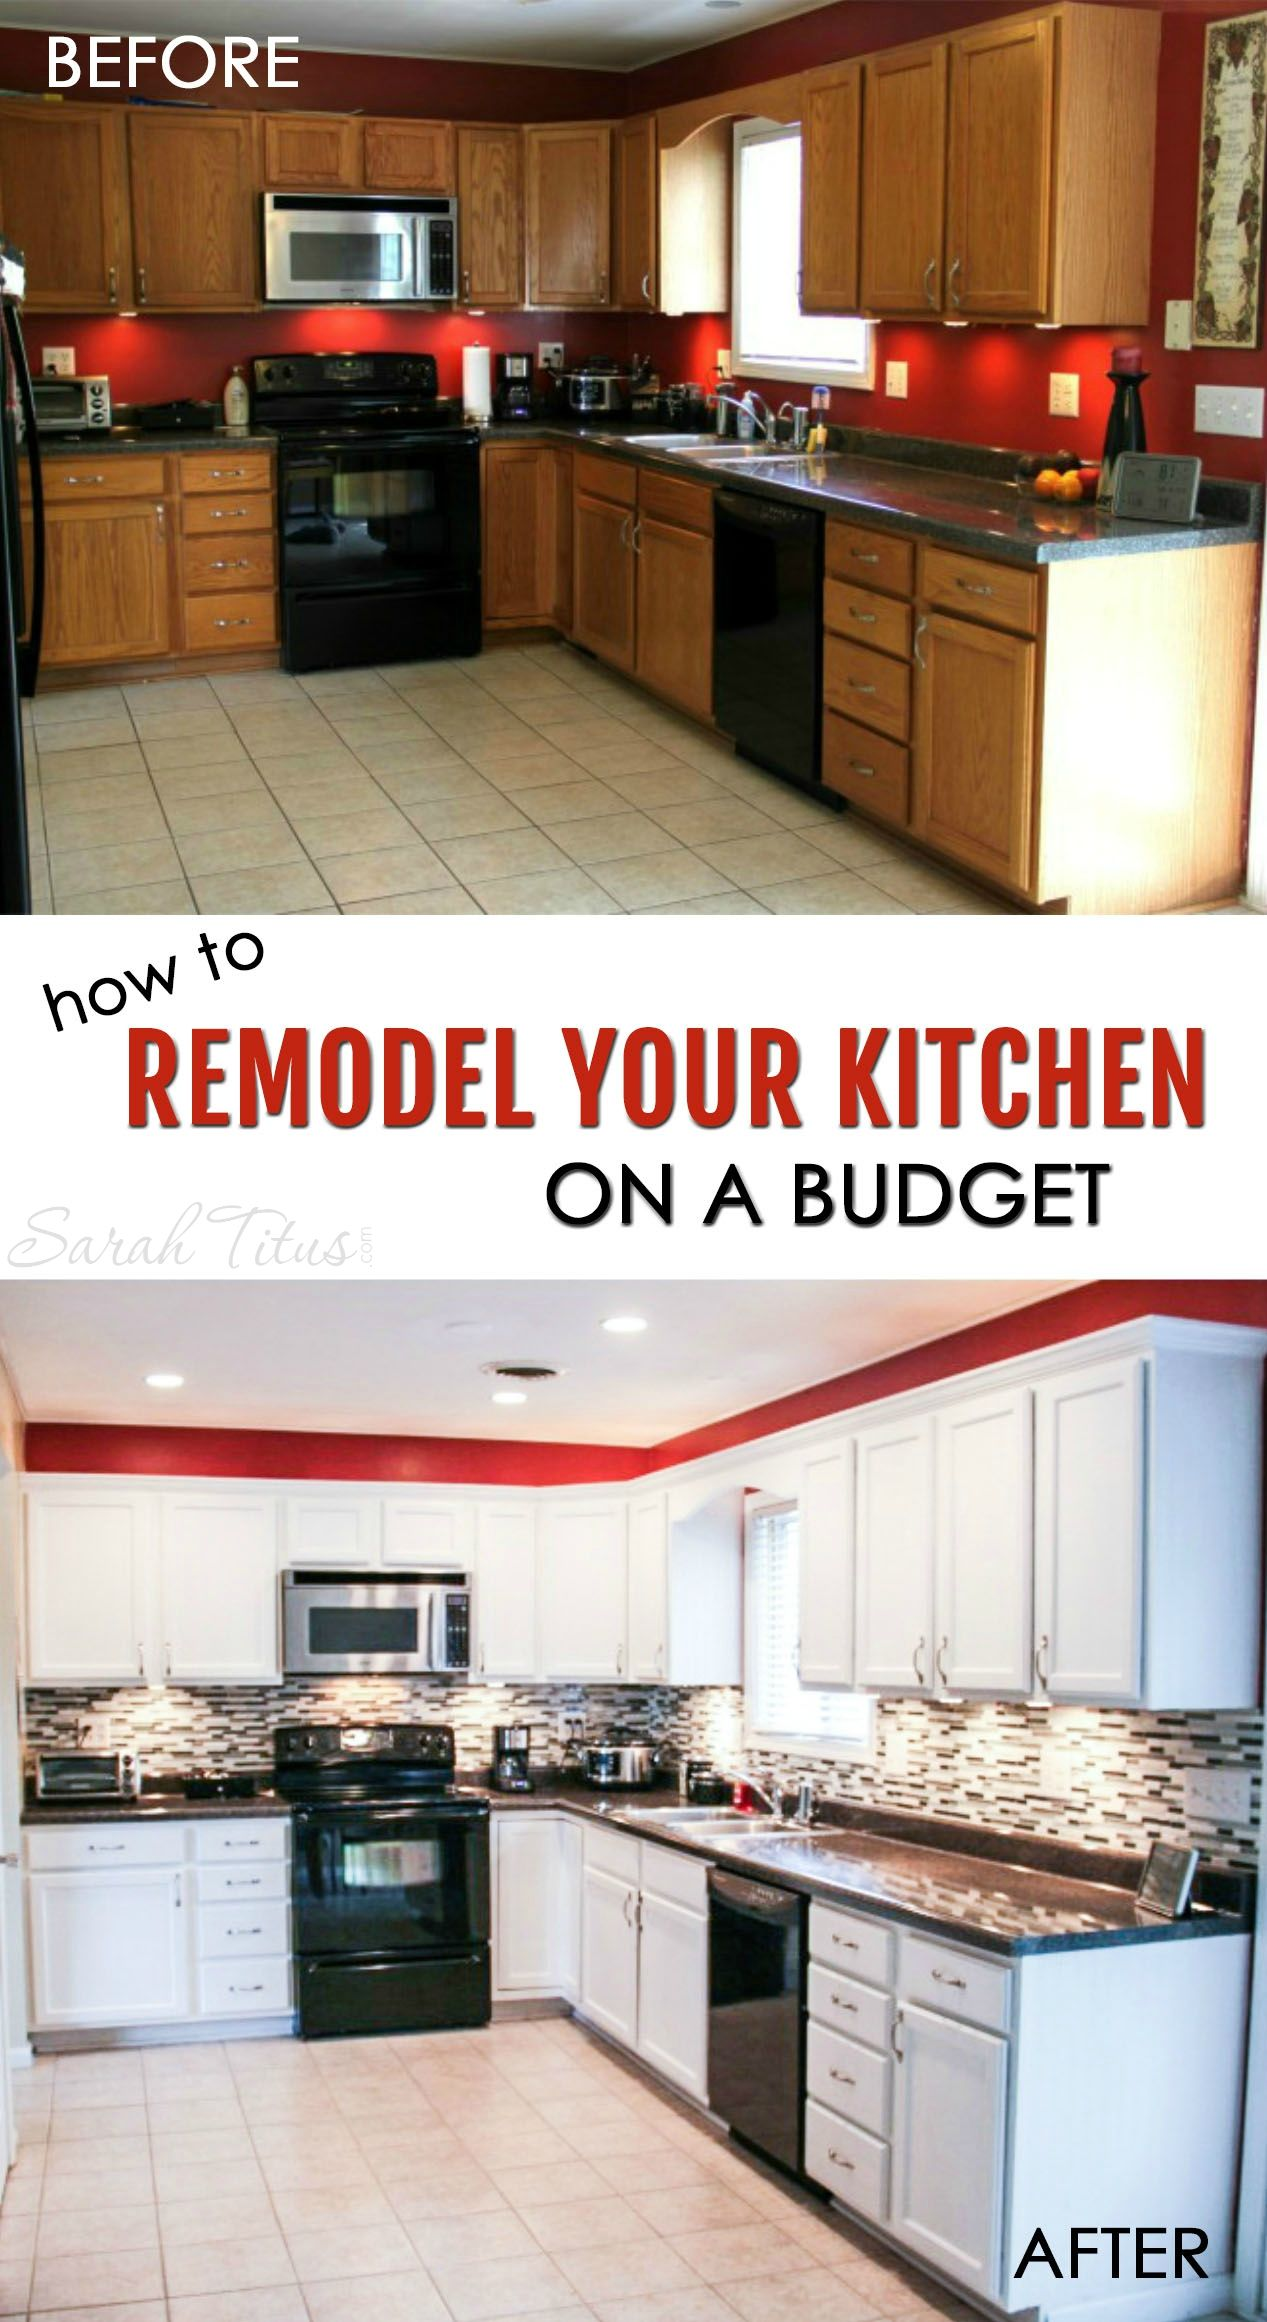 kitchen on a budget onyx backsplash how to remodel your home improvement are very expensive but this trick can make look brand new for fraction of the cost here s